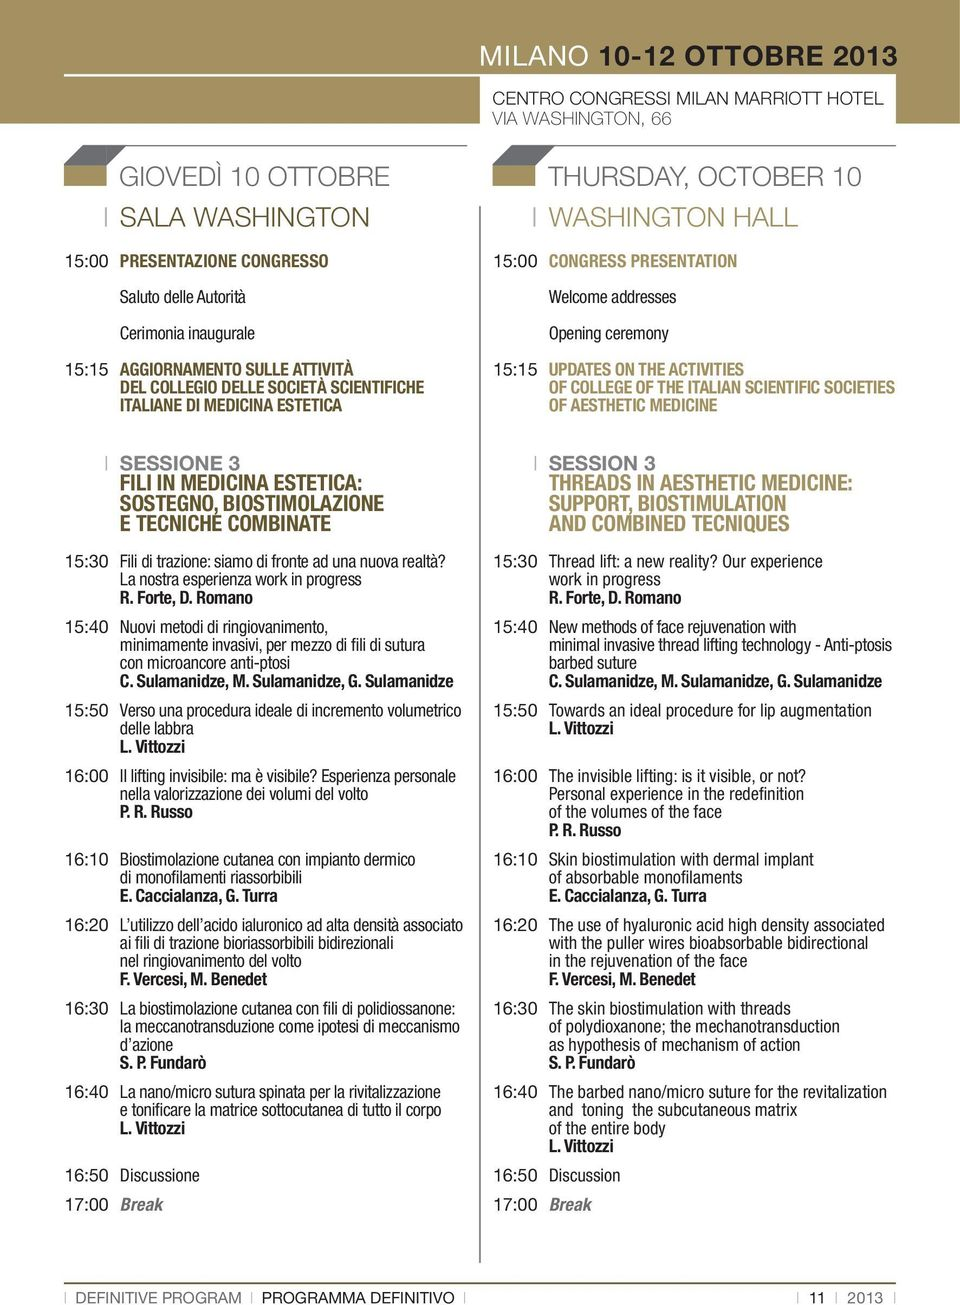 activities of College of the talian Scientific Societies of Aesthetic Medicine 15:30 15:40 15:50 16:00 16:10 16:20 16:30 16:40 16:50 17:00 Sessione 3 FL N MEDCNA ESTETCA: SOSTEGNO, BOSTMOLAZONE E